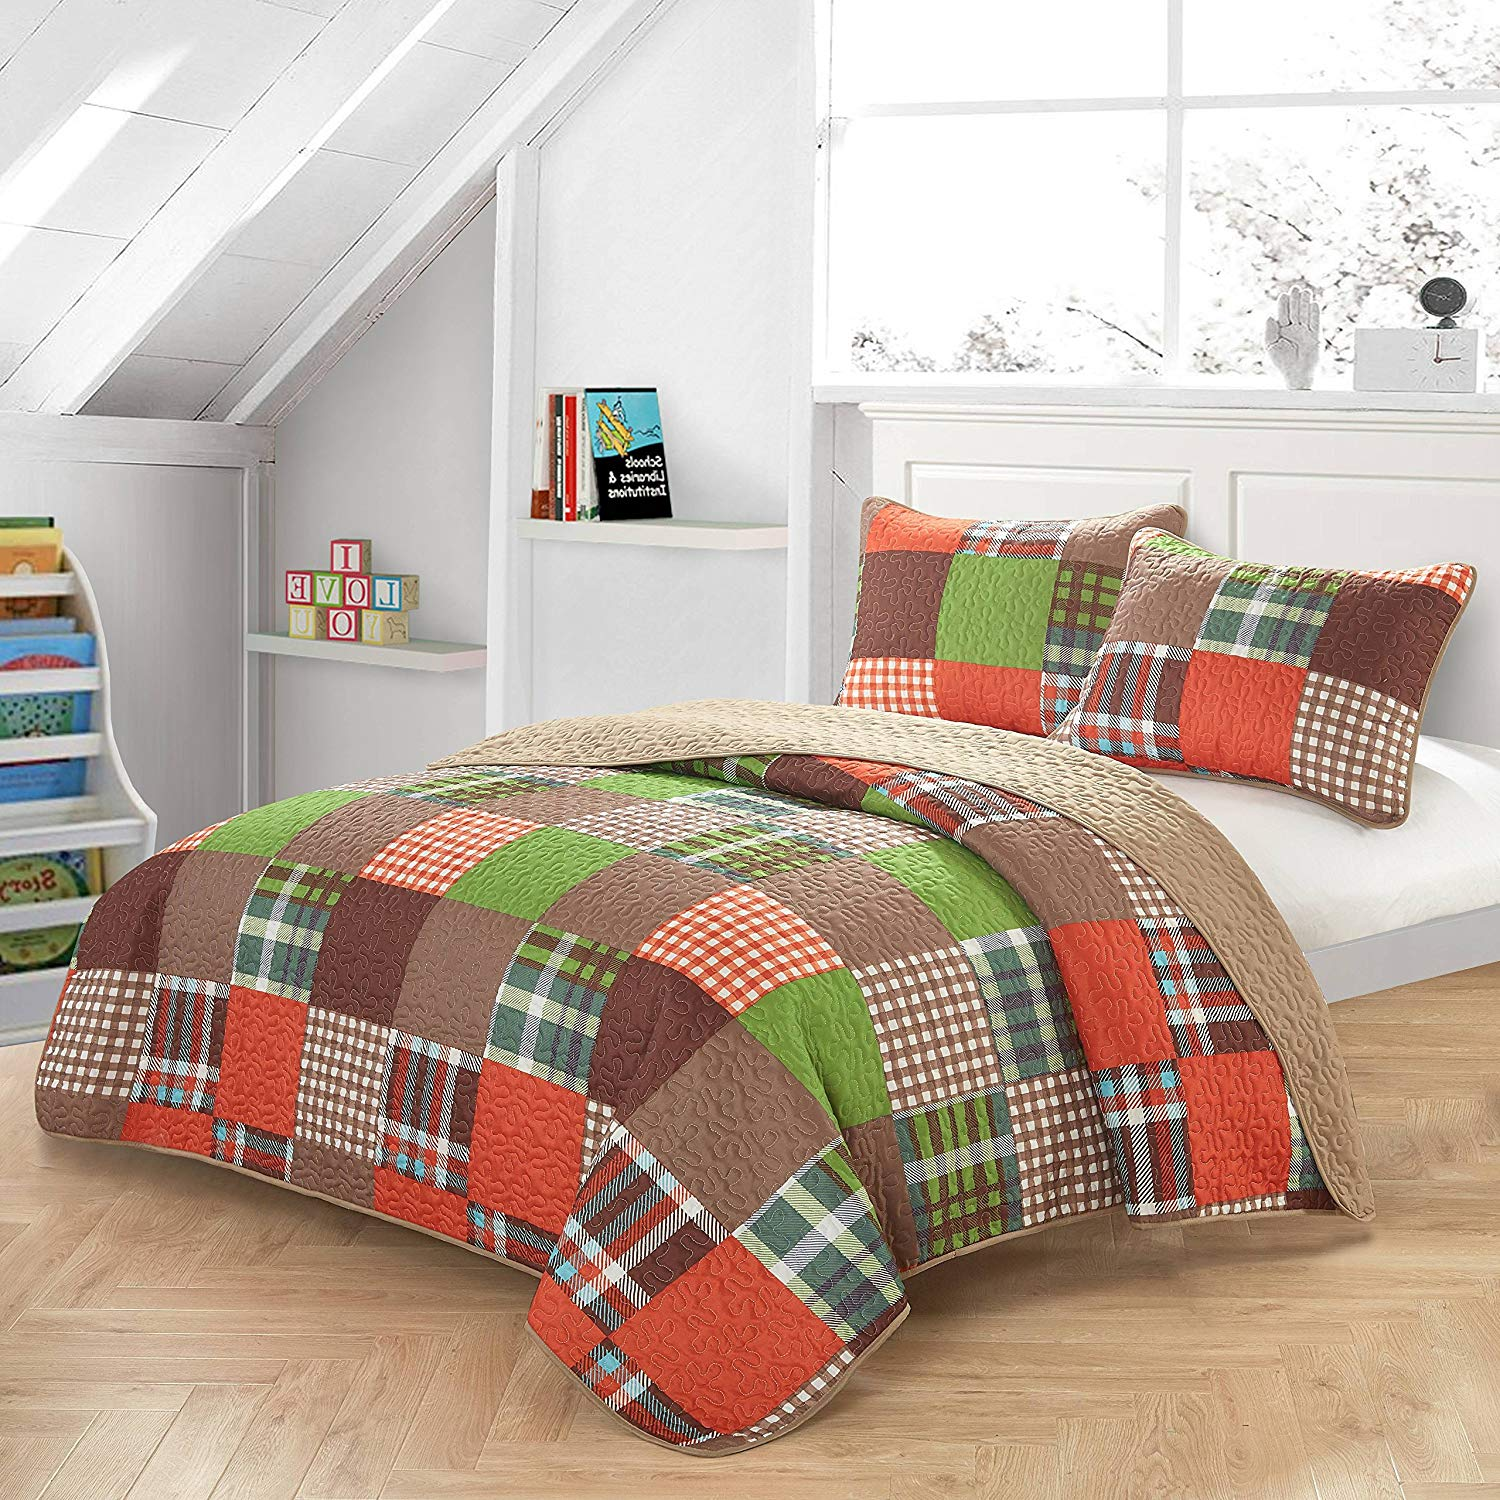 Ln 2 Piece Kids Orange Green Plaid Quilt Twin Set, Brown Blue Patchwork Winery Bedding Tartan Glen Check Geometric for Boys Bedroom Squared Box Durable Reversible Vibrant Color, Polyester